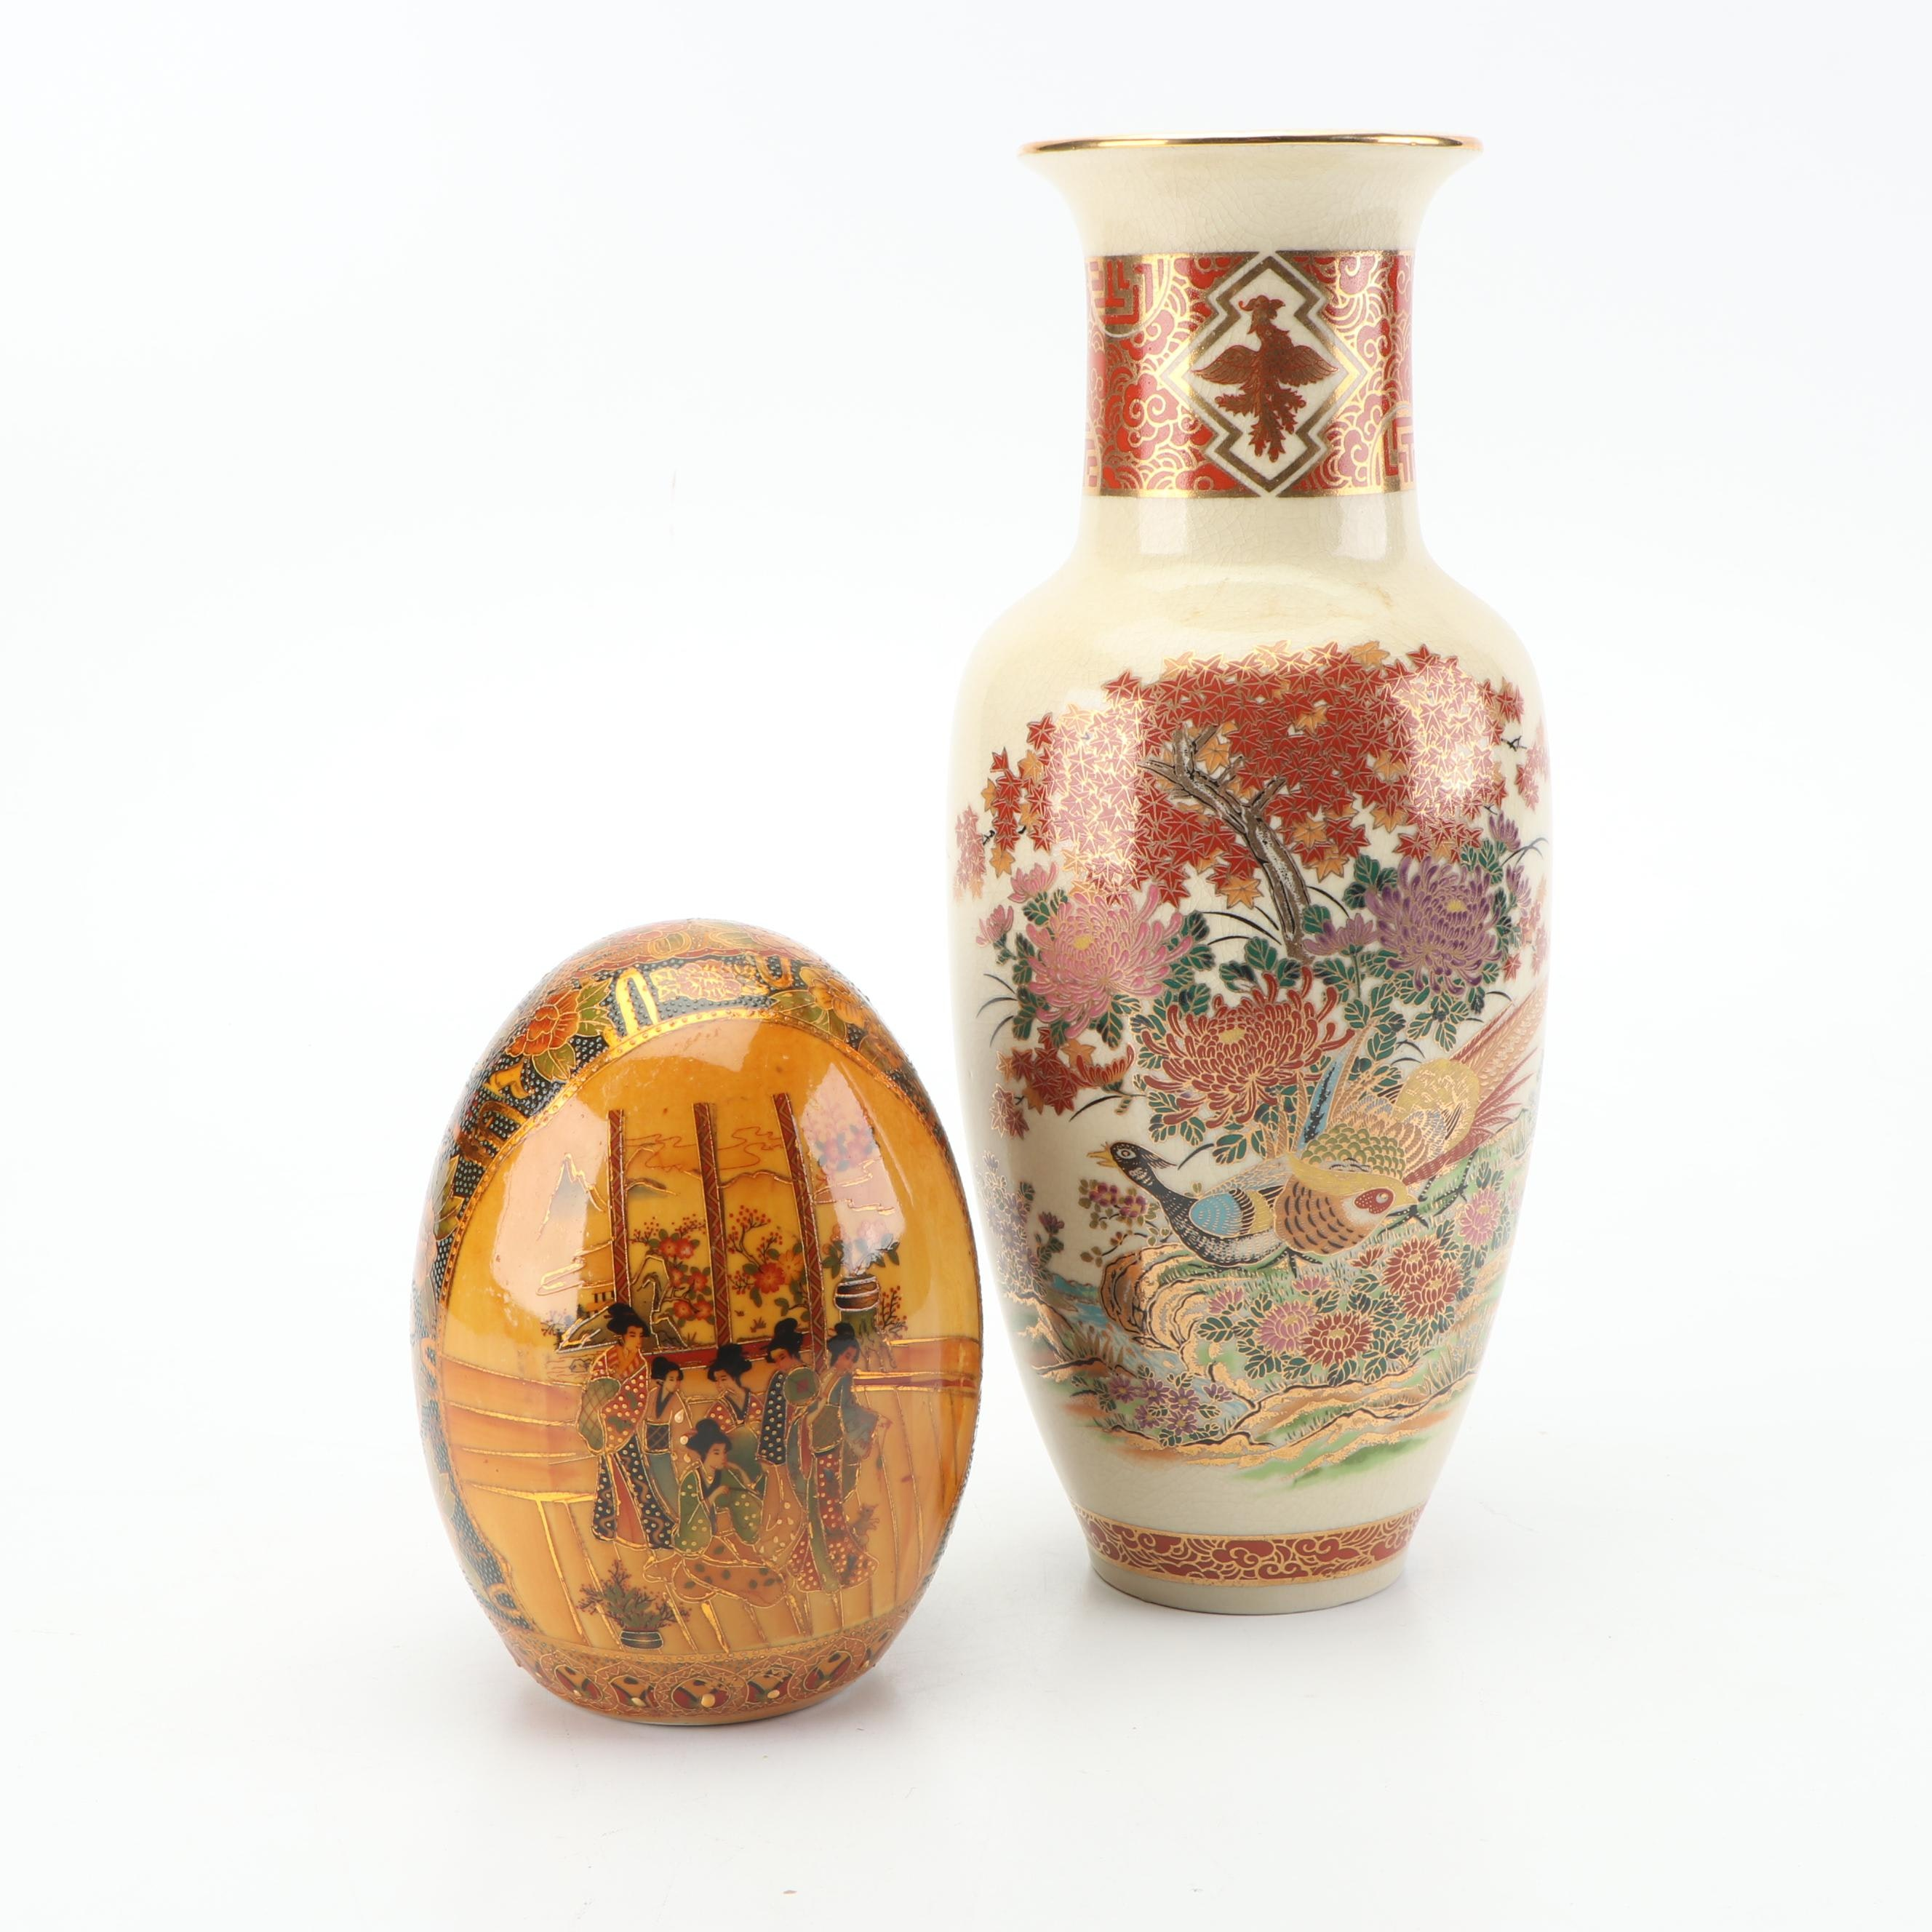 Japanese Satsuma Vase with Chinese Satsuma Style Egg